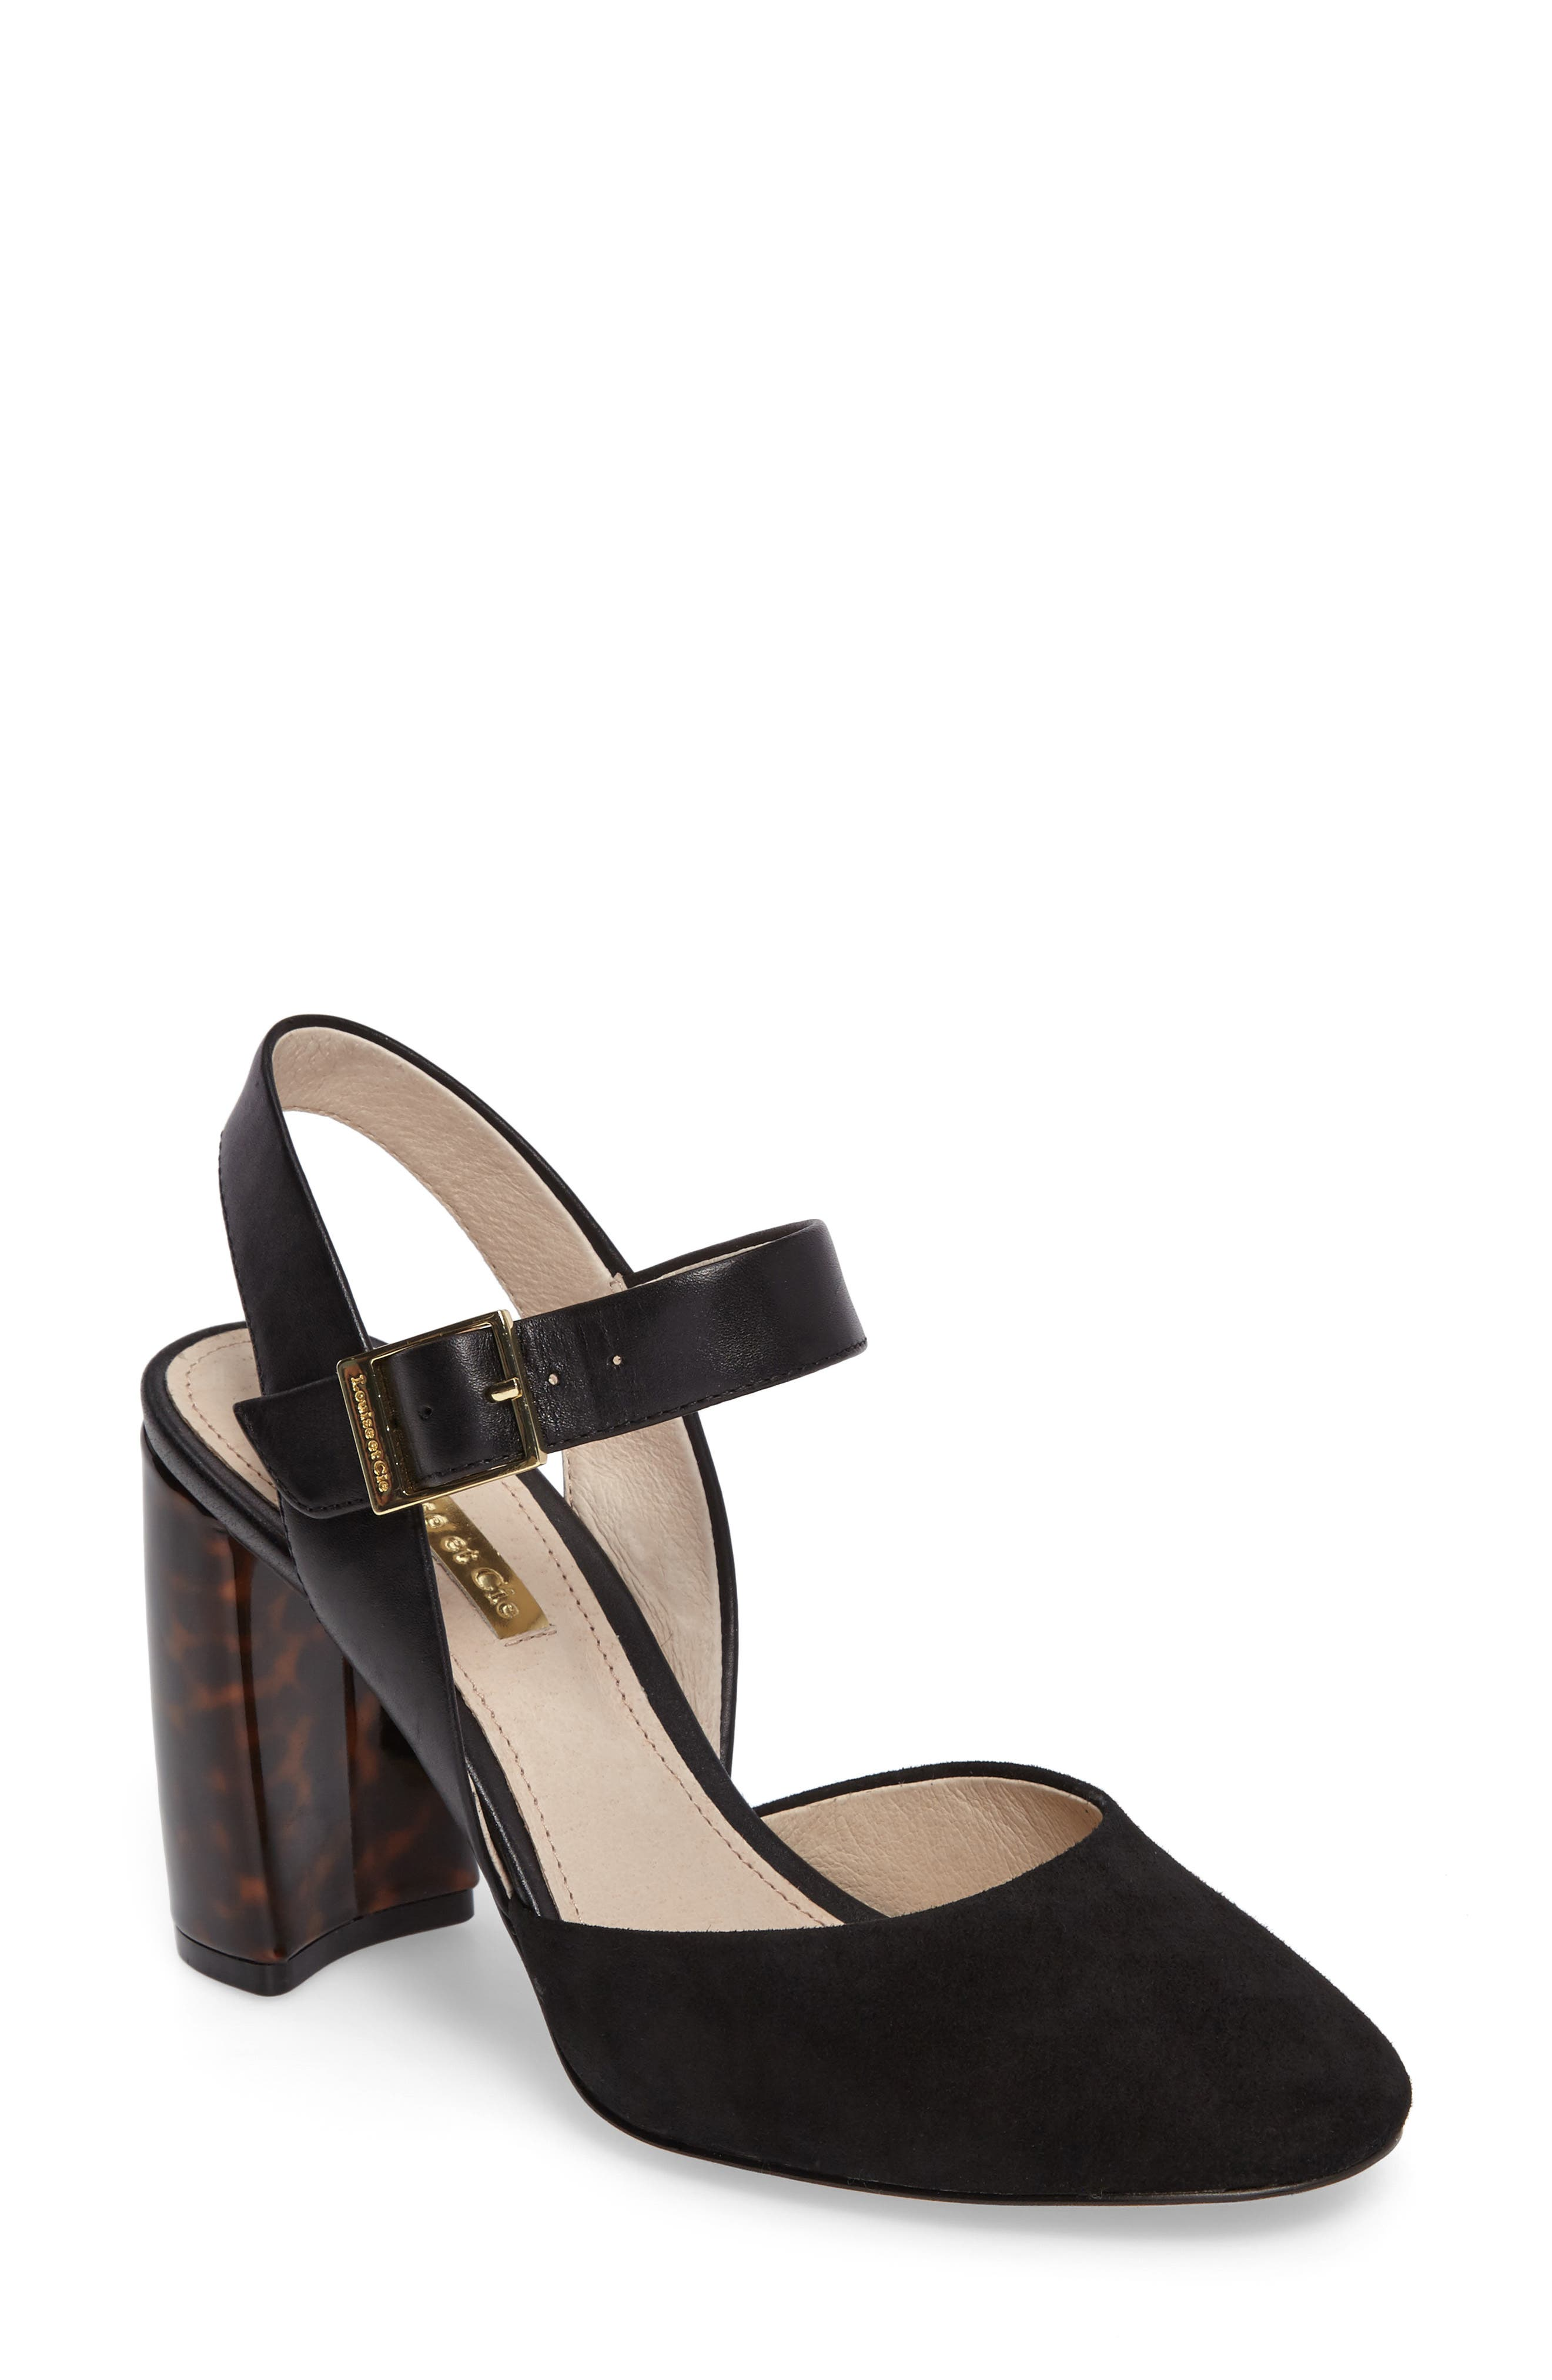 Juveau Crescent Heel Pump,                         Main,                         color, Black Suede